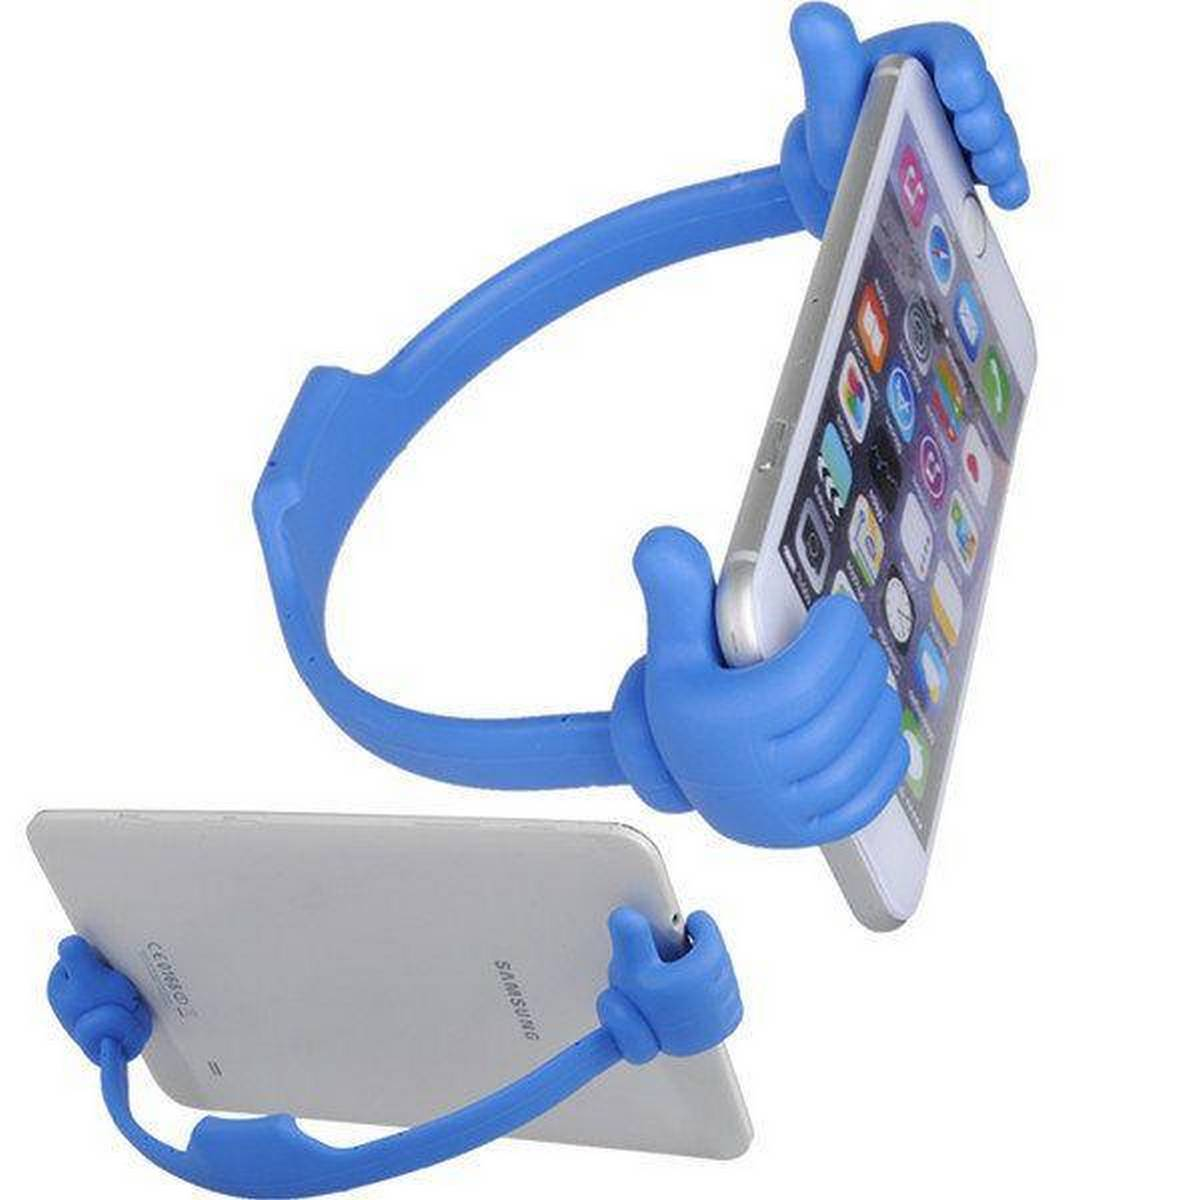 Thumb Design Mobile OK Stand Holder Universal For All Mobile Phones and Tablets